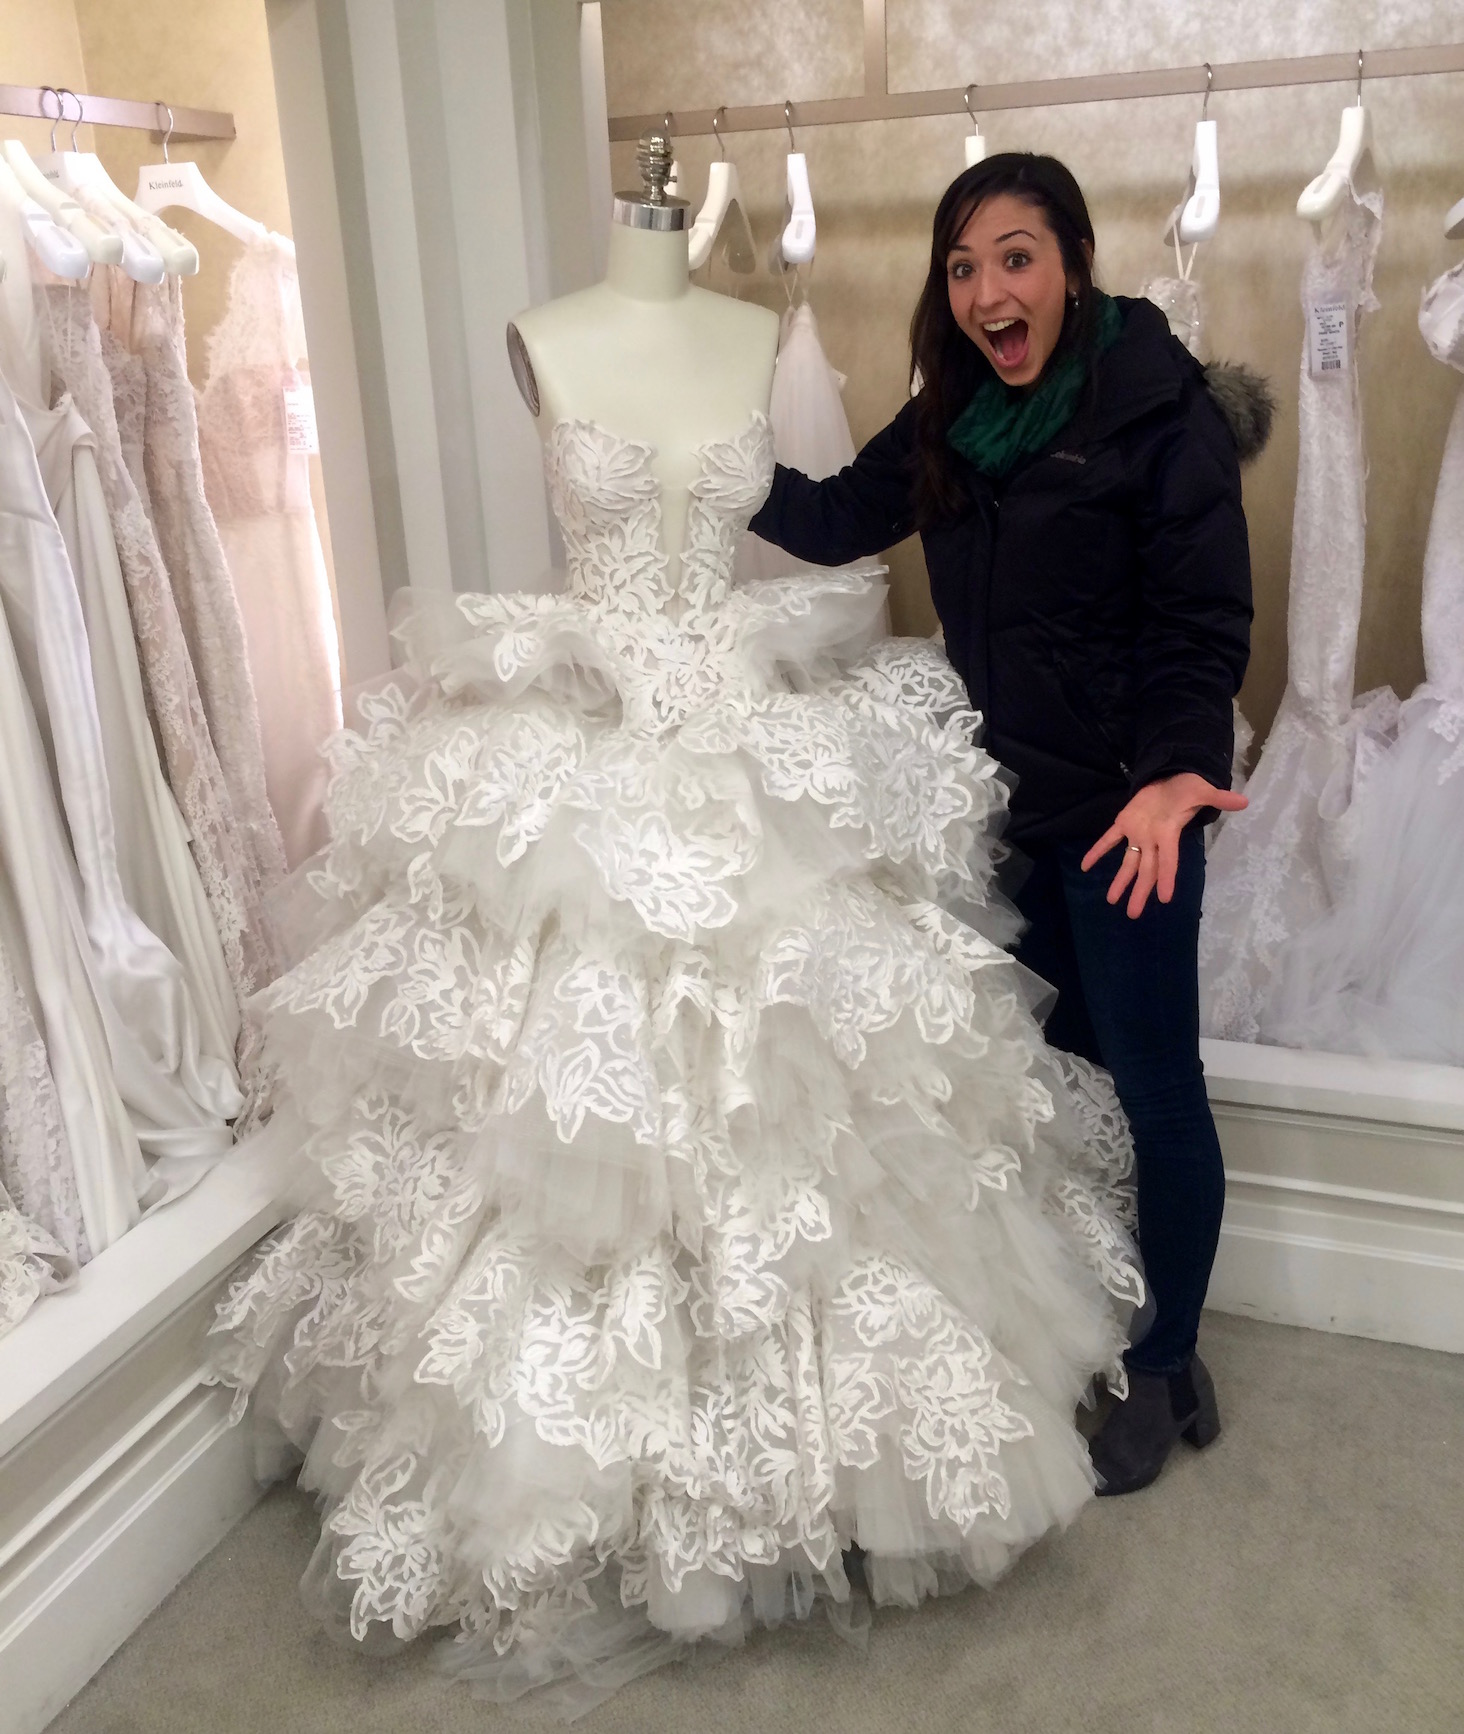 02e02094ef57 Jaded New Yorkers Experience Kleinfeld Bridal (the One from Say Yes to the  Dress) - New York Cliché